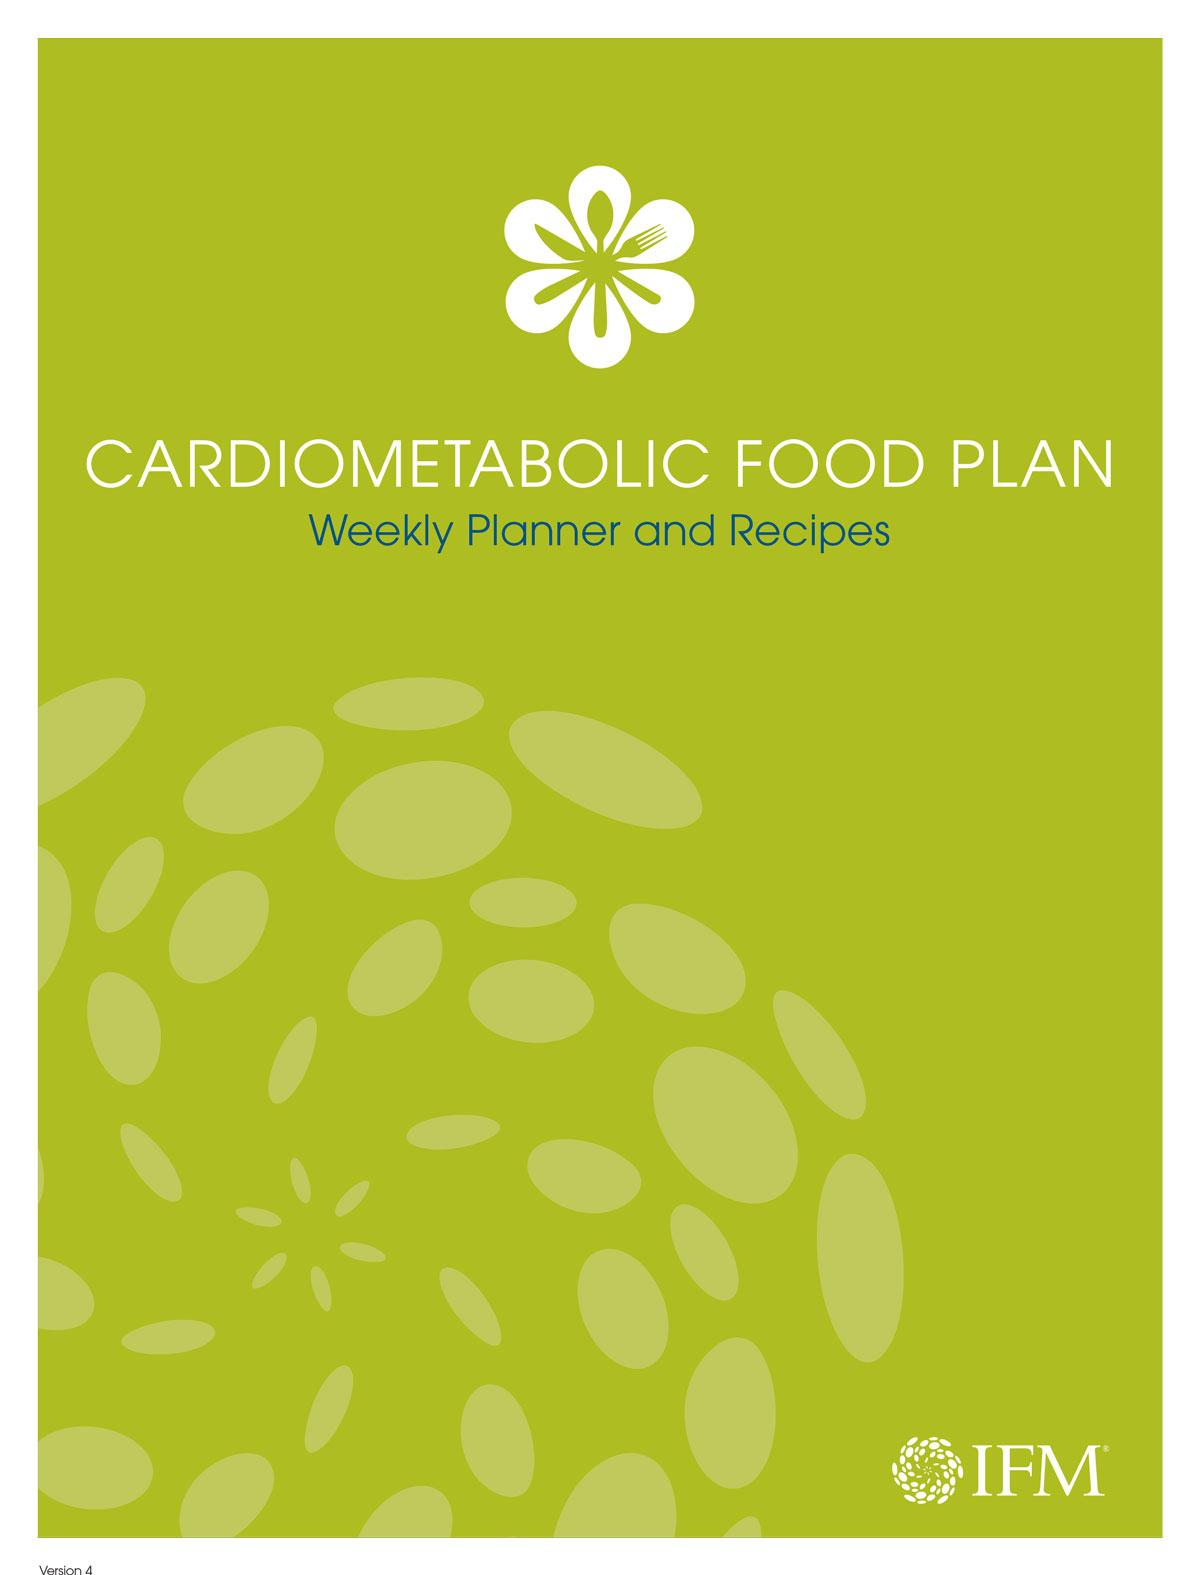 Cardiometabolic Food Plan Weekly Planner